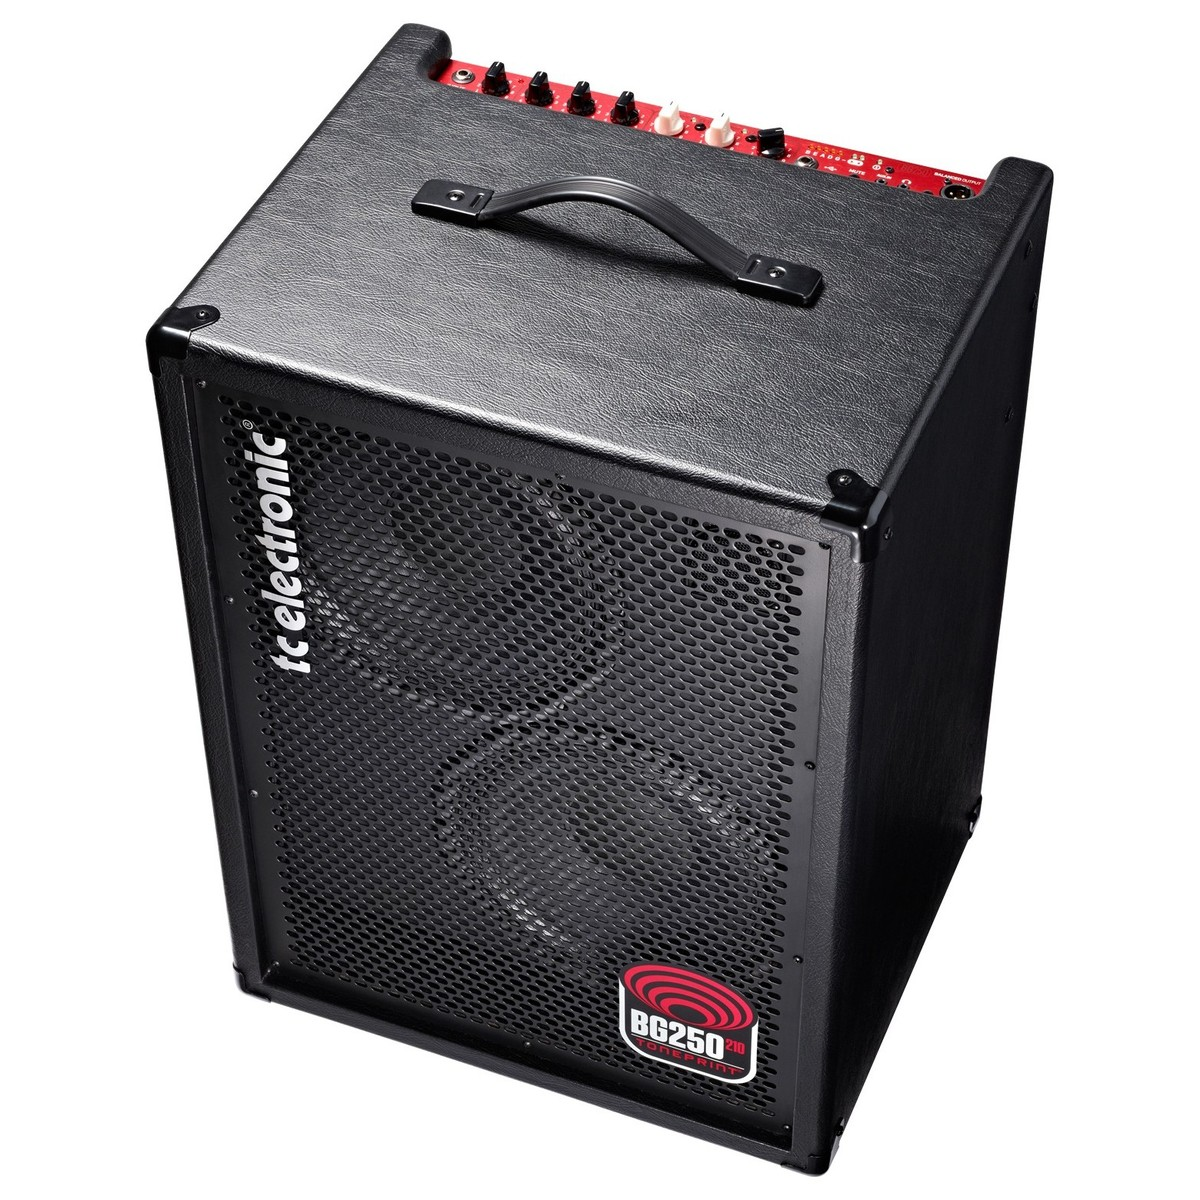 tc electronic bg250 210 bass combo amp at gear4music. Black Bedroom Furniture Sets. Home Design Ideas